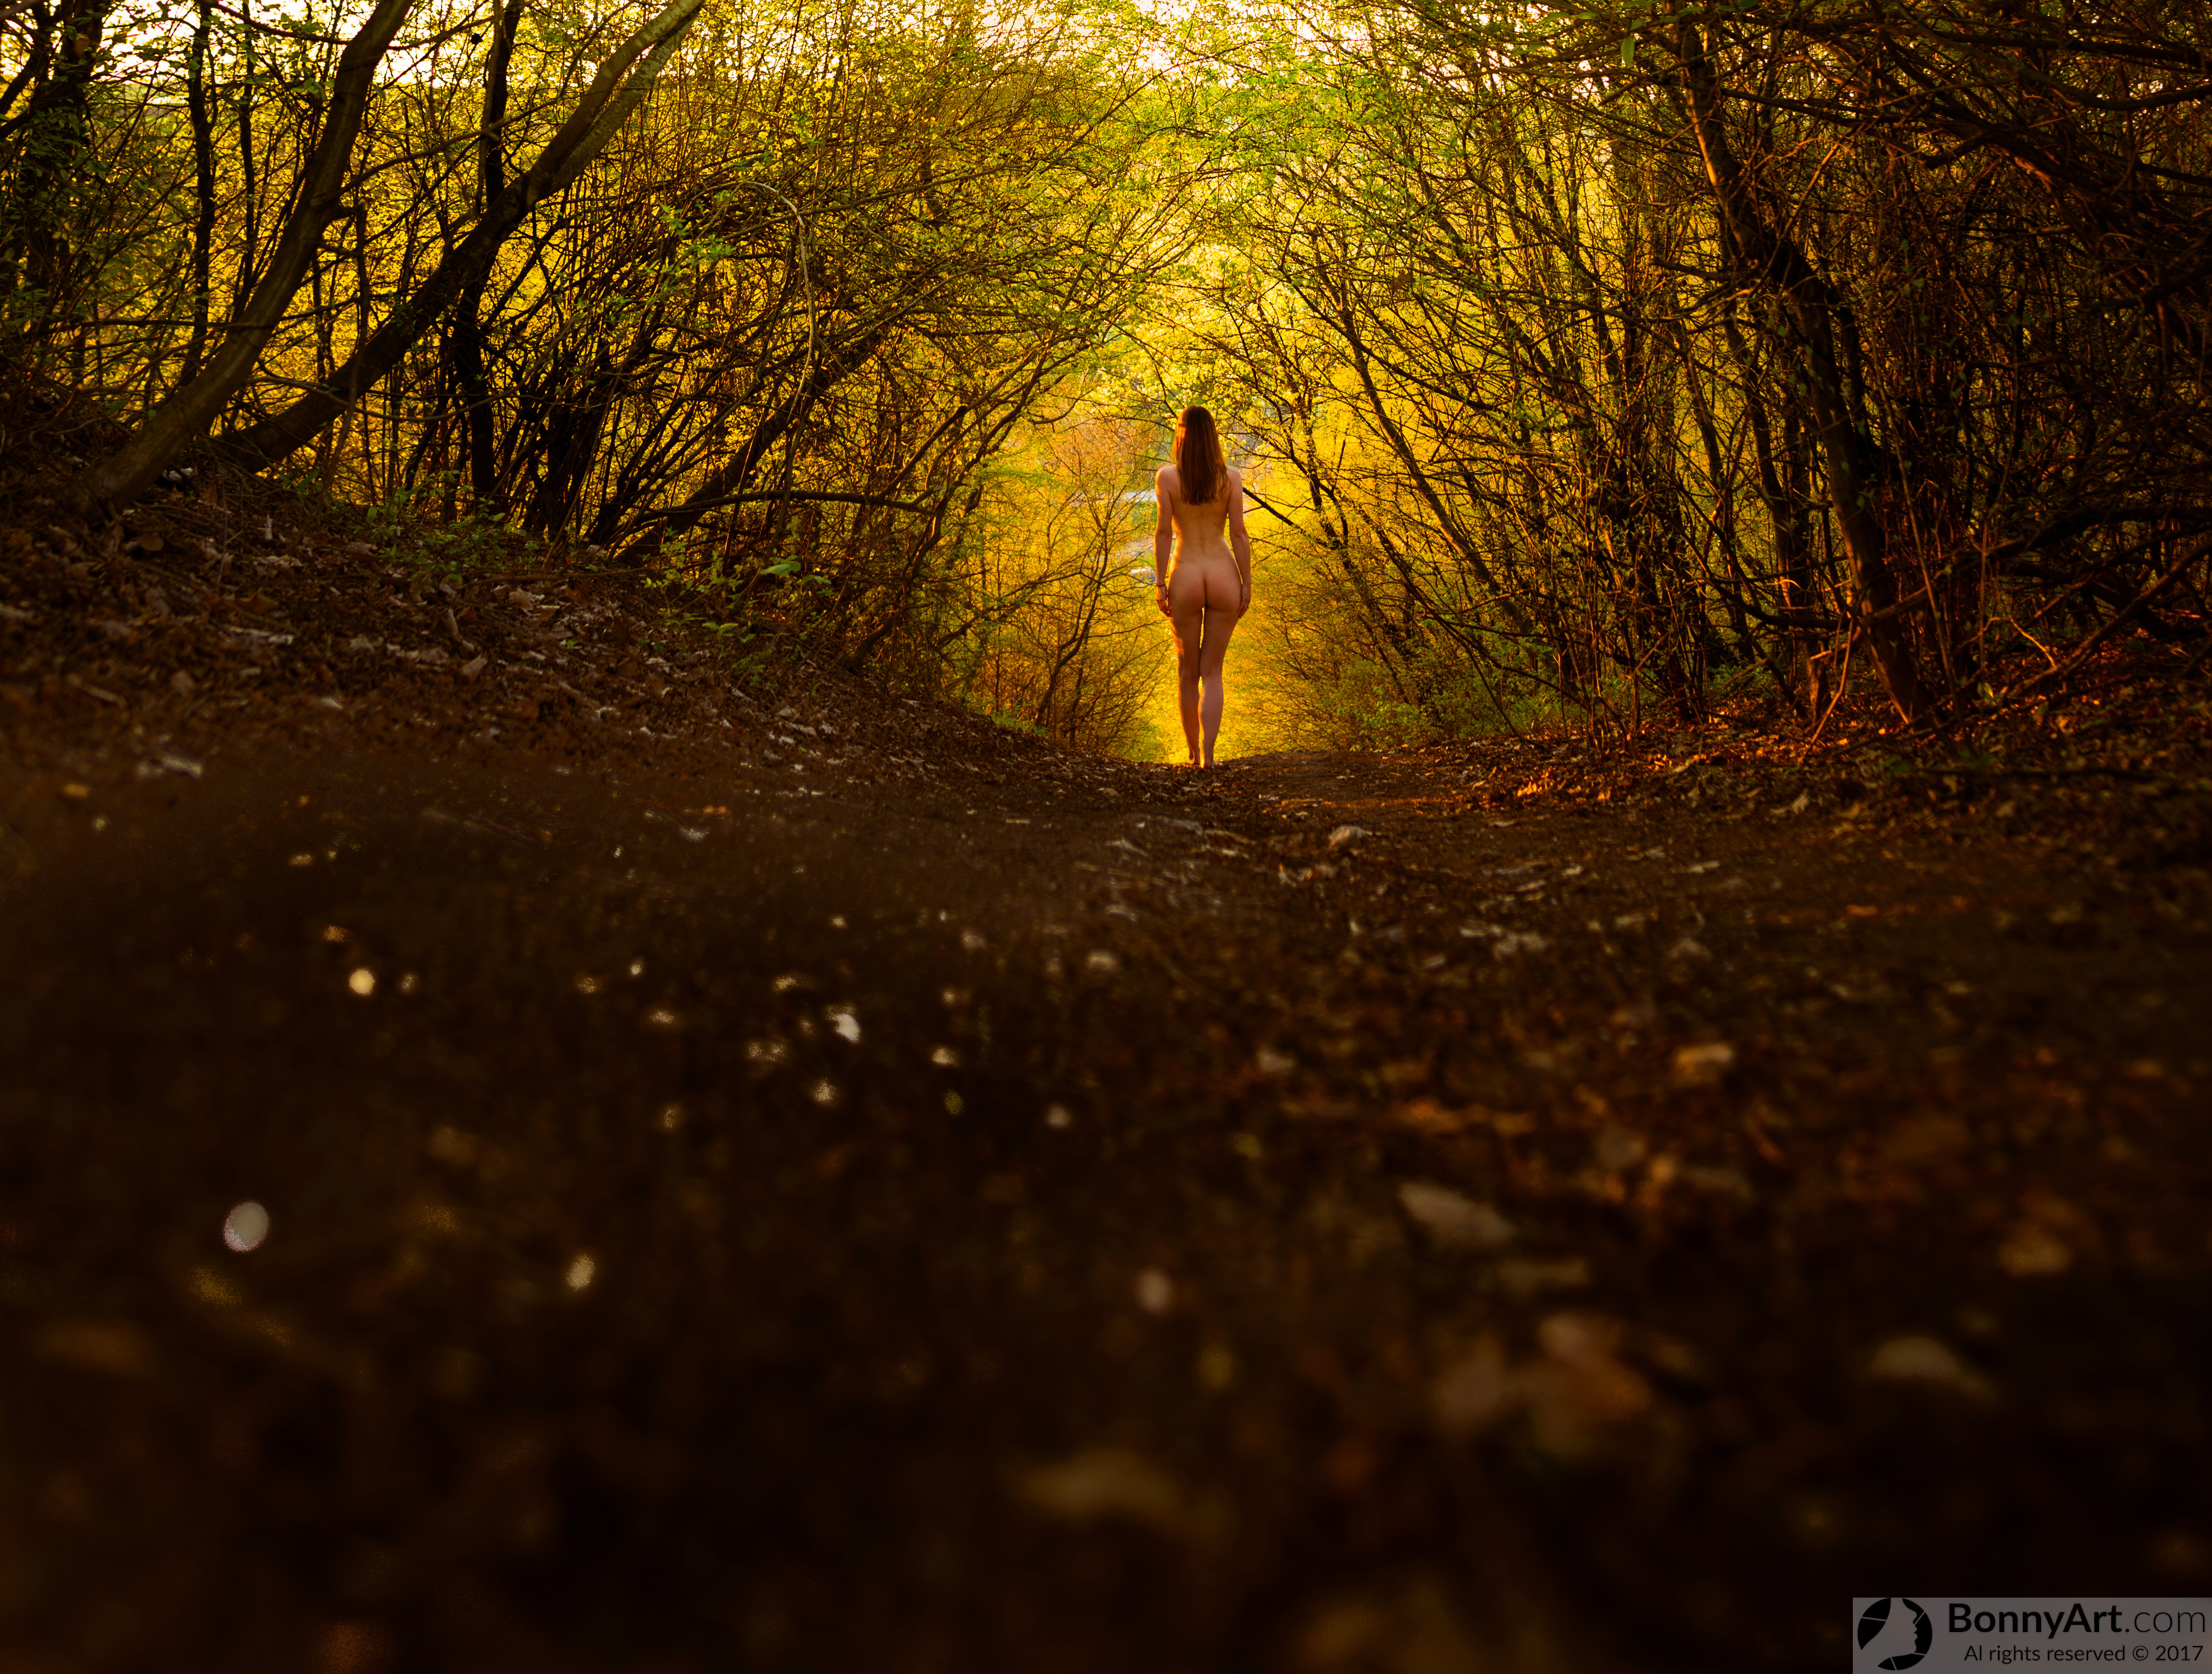 Starring at the yellow light path in the woods artistic nude girl HD